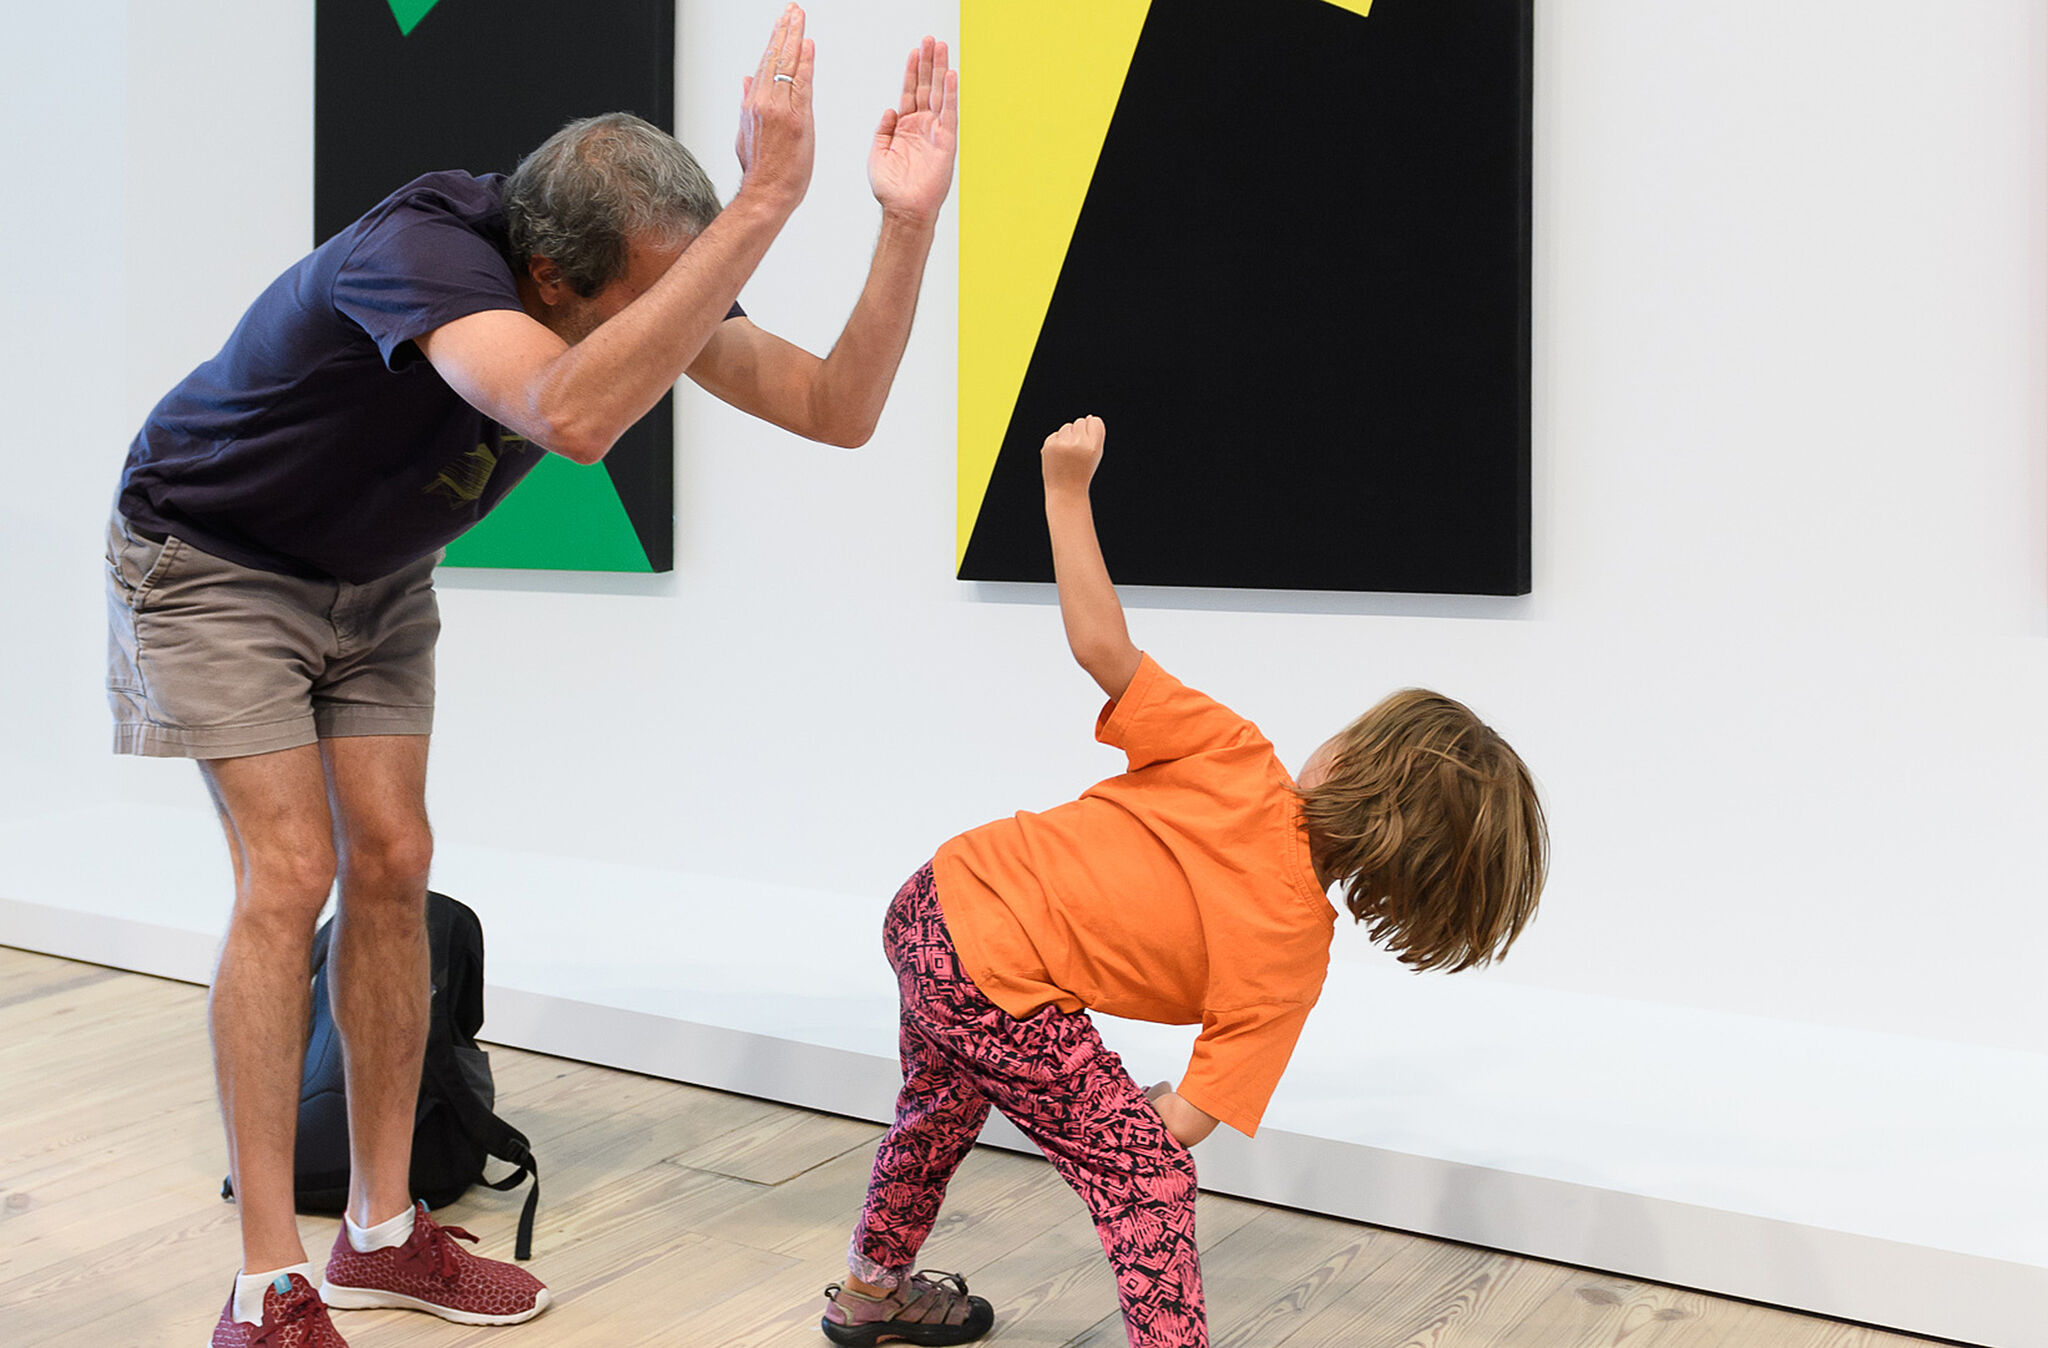 Families create artwork in the galleries